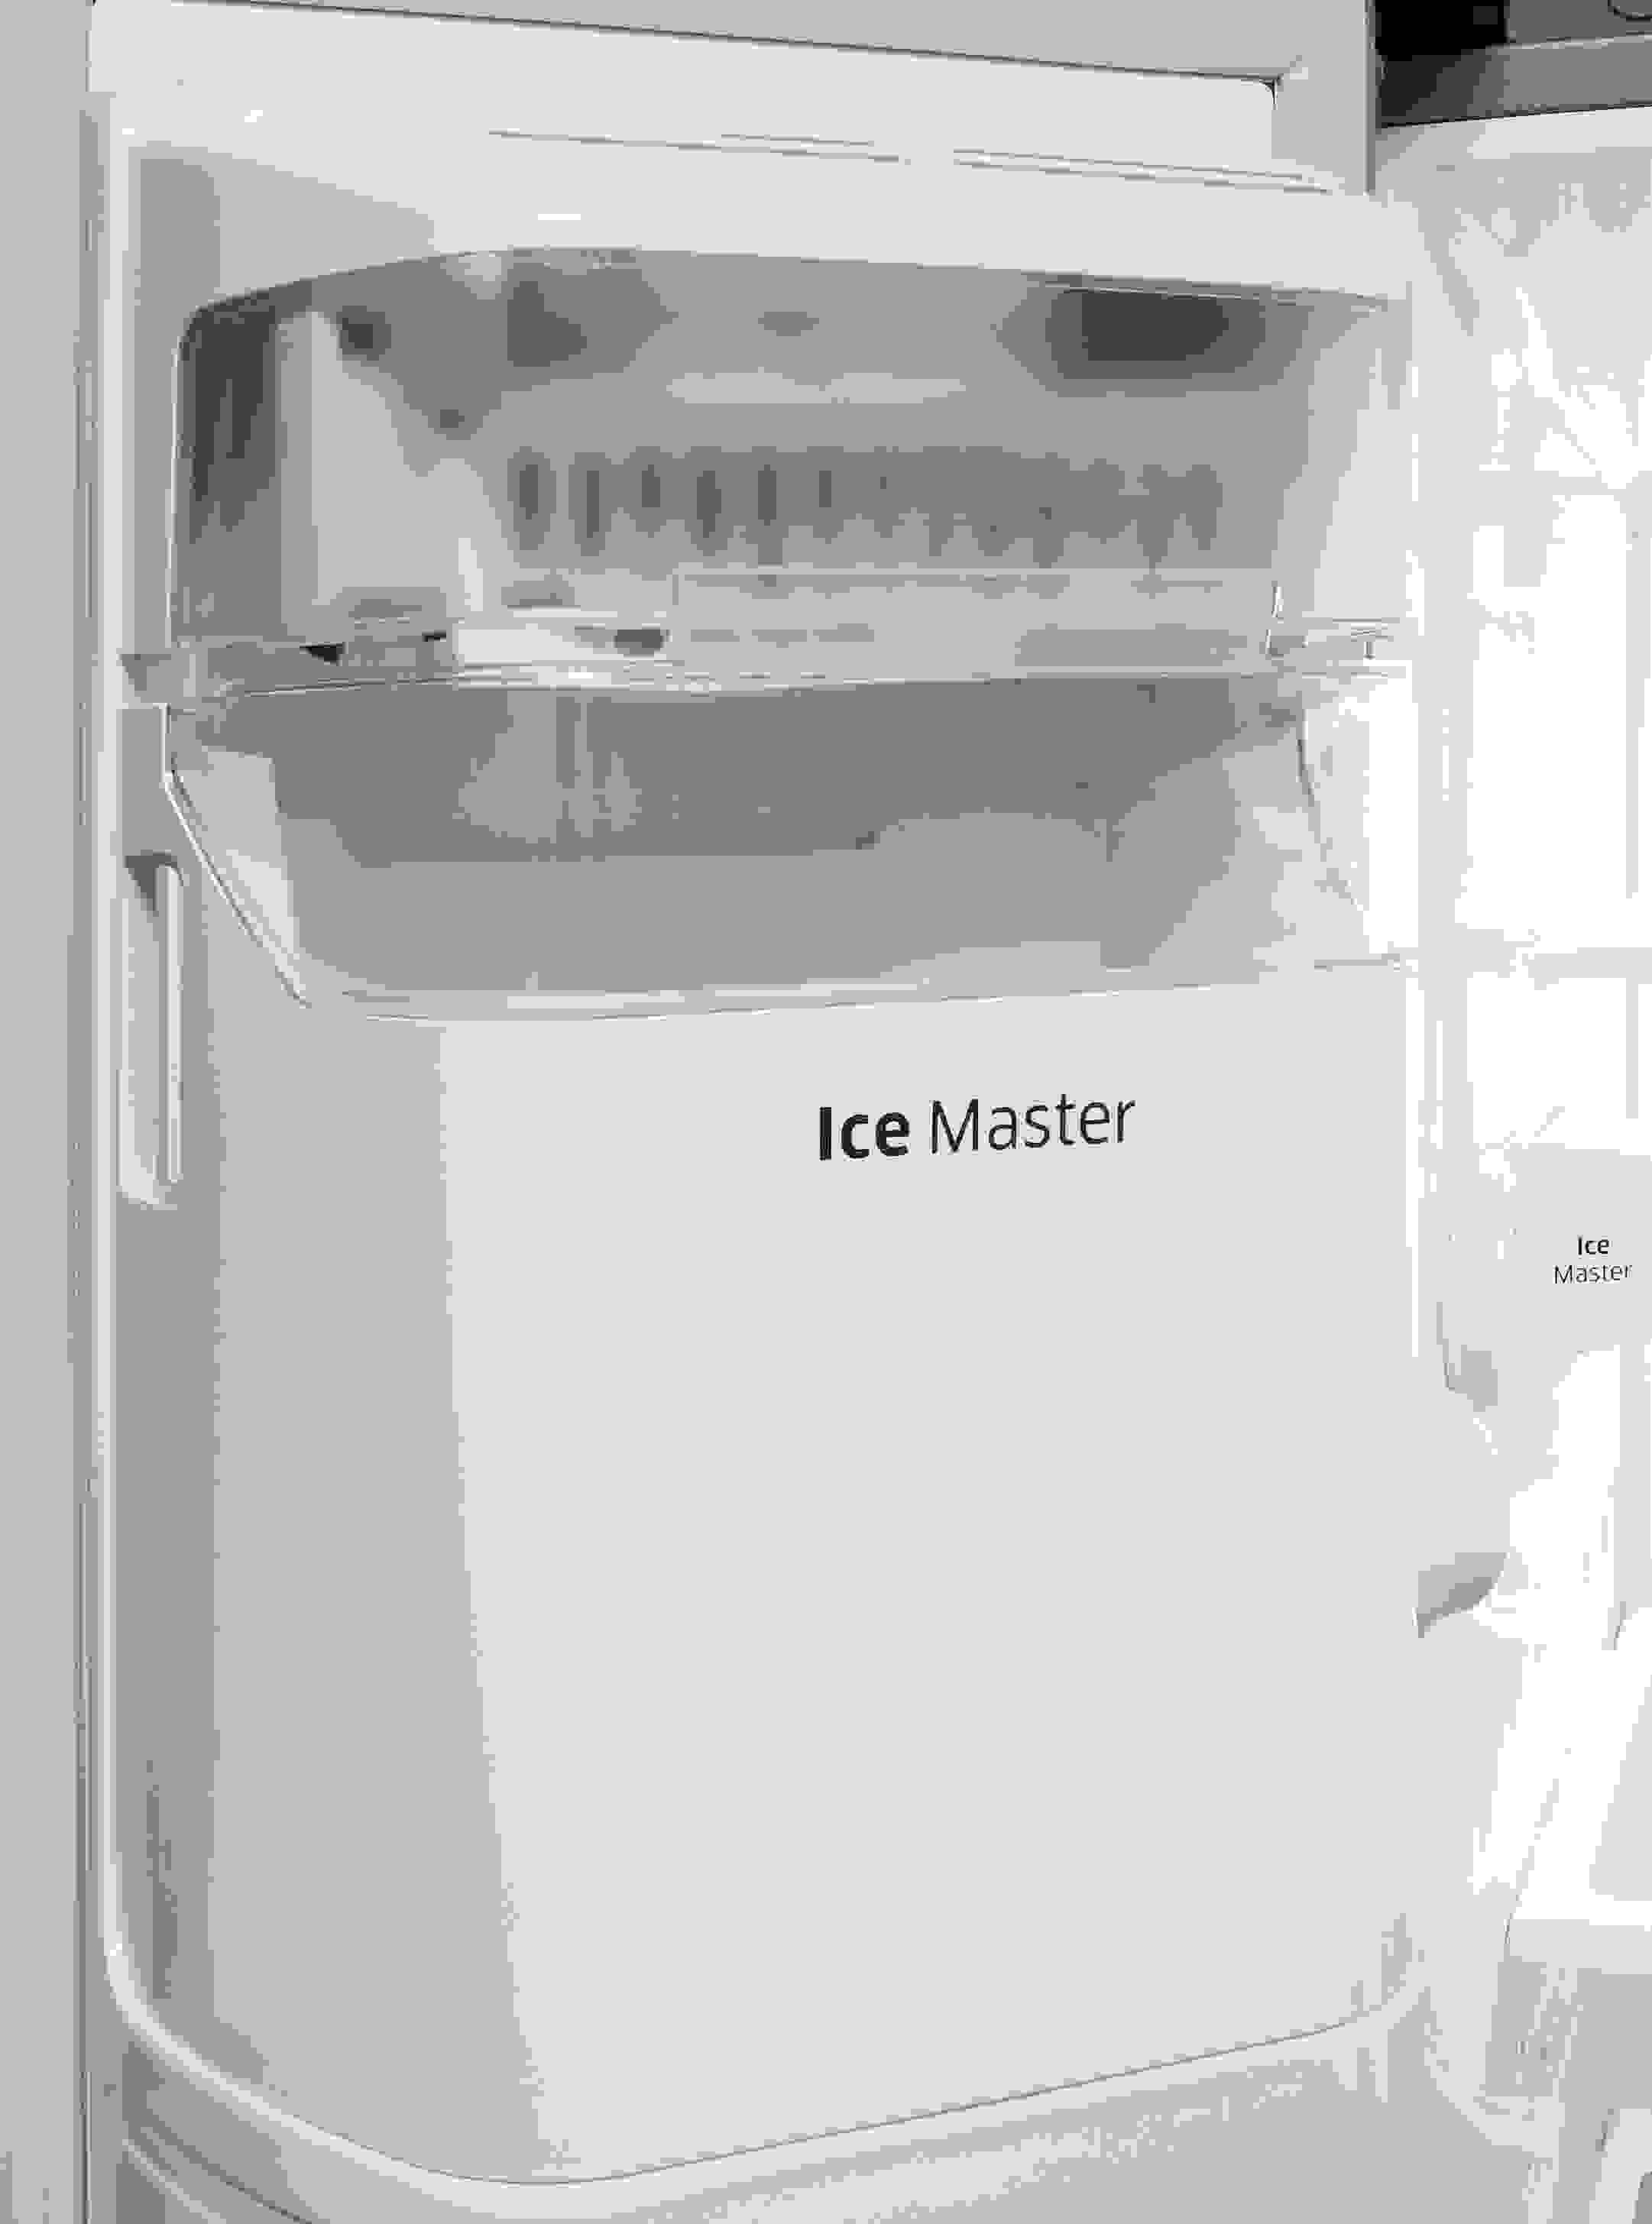 The Samsung RH25H5611SR's door-mounted ice maker helps keep space free in the main freezer section.